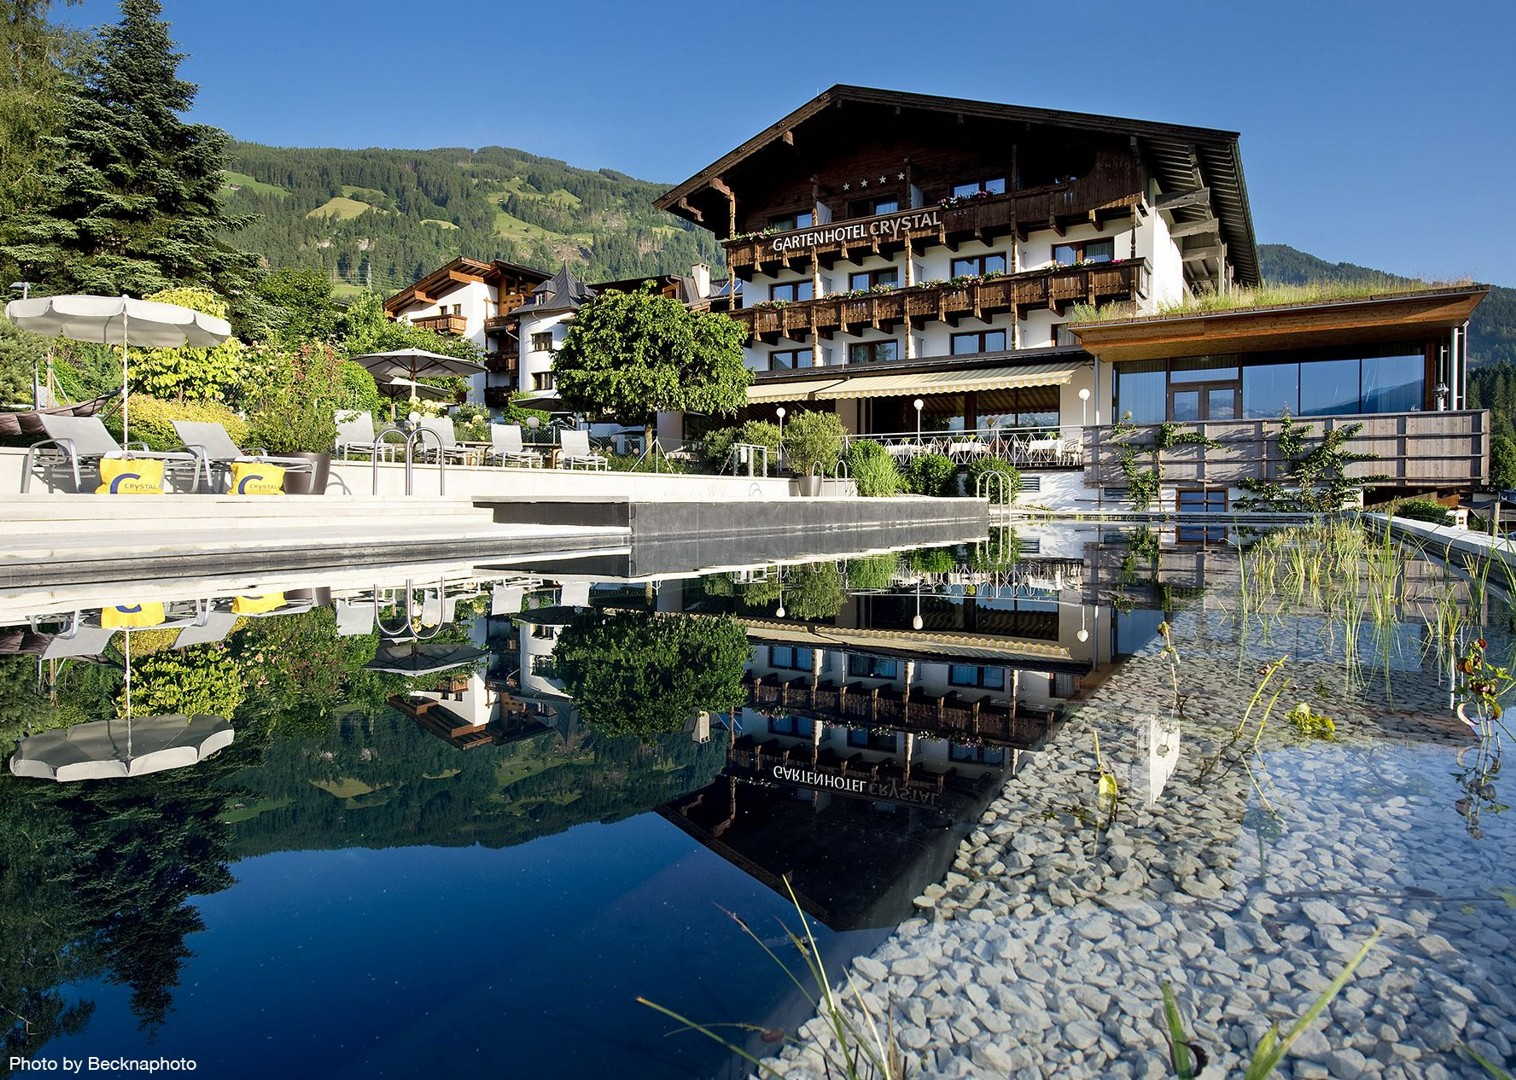 hotel-tyrolean-valleys-mountains-family-holiday.jpg - Austria - Tyrolean Valleys - Family Cycling